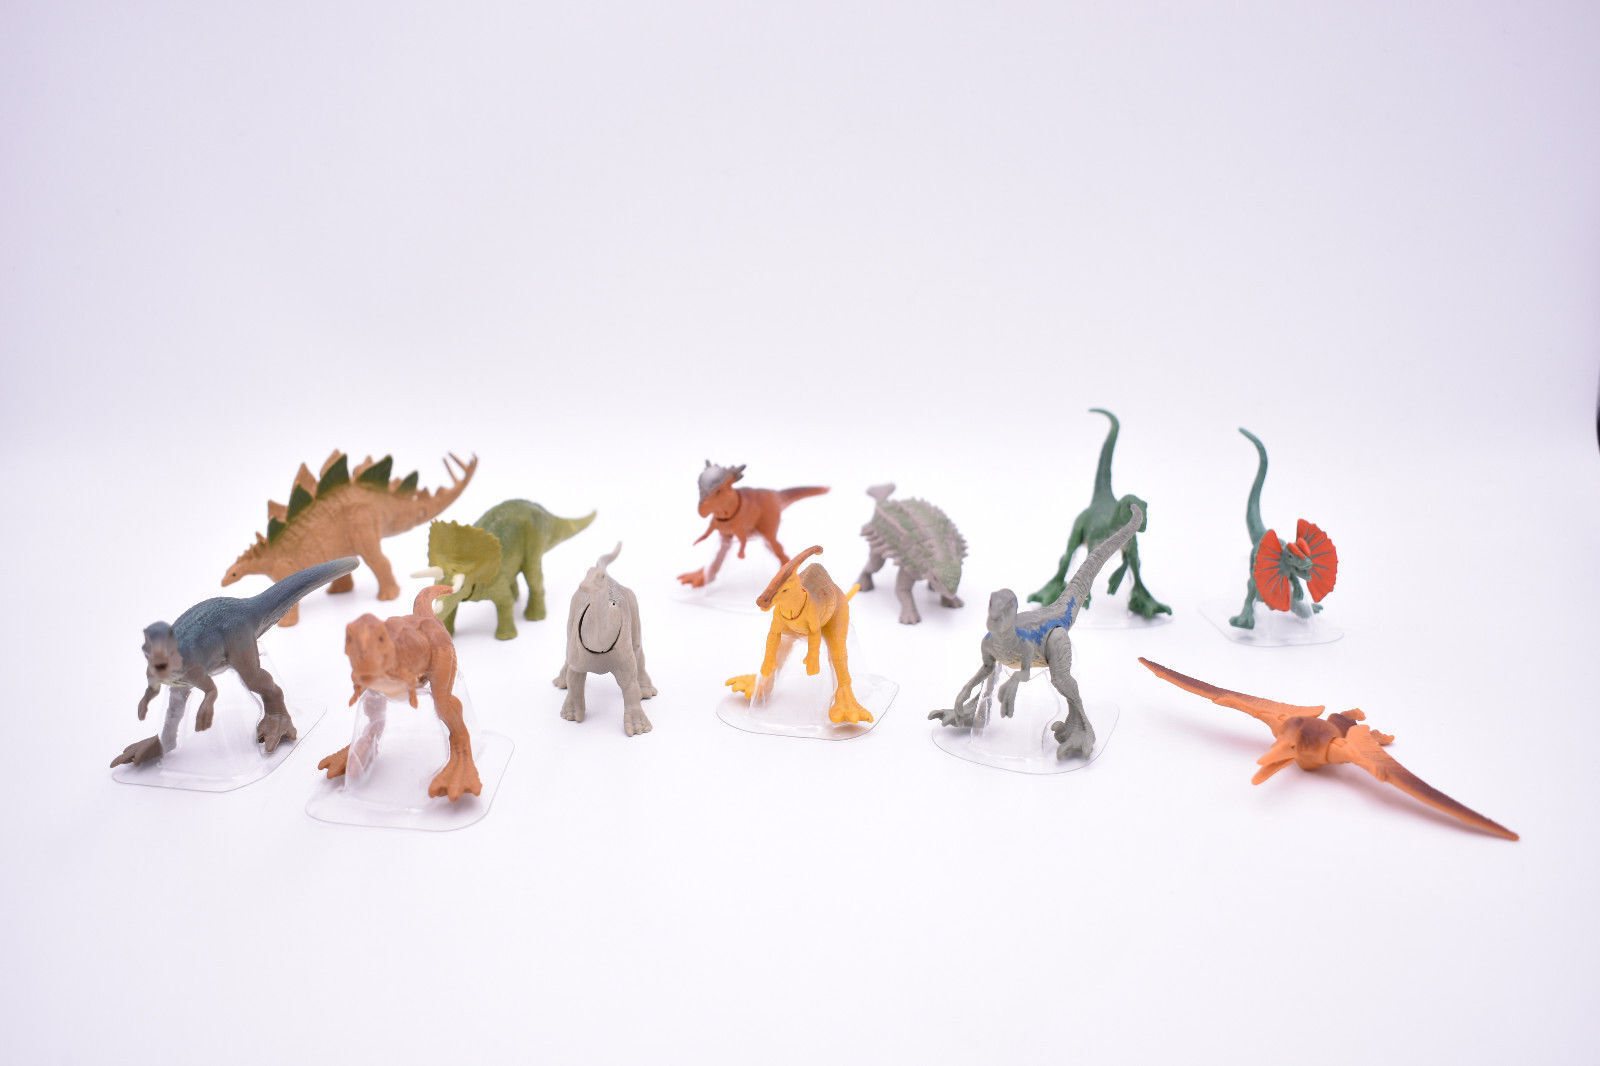 NEW Jurassic World Mini Action Dino Blind Tasche Figures A-L Complete Set of 12